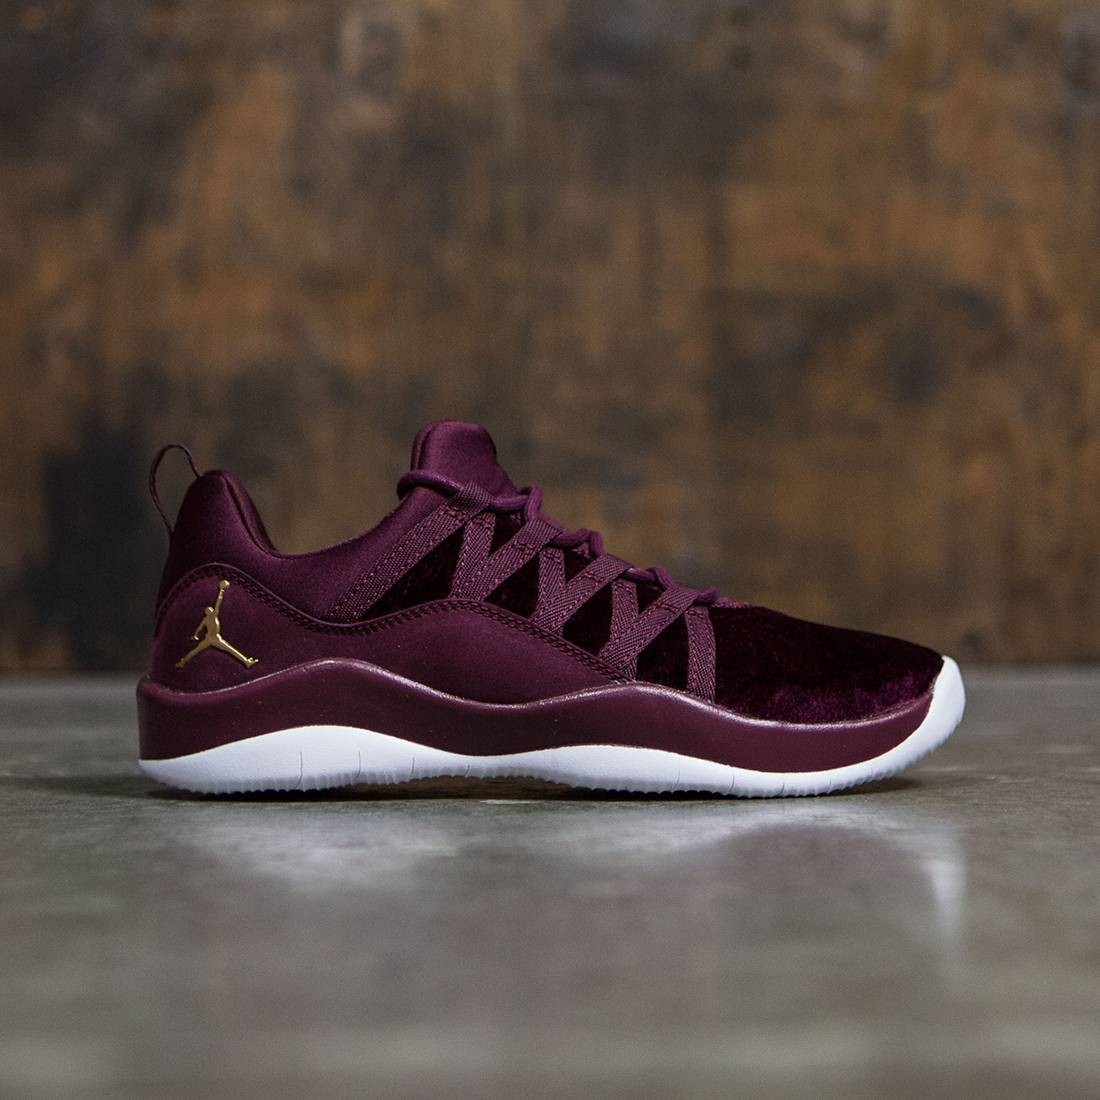 timeless design b78b4 6aa10 Jordan Big Kids Girls' Deca Fly Heiress Collection (GS) (night maroon /  metallic gold-white)